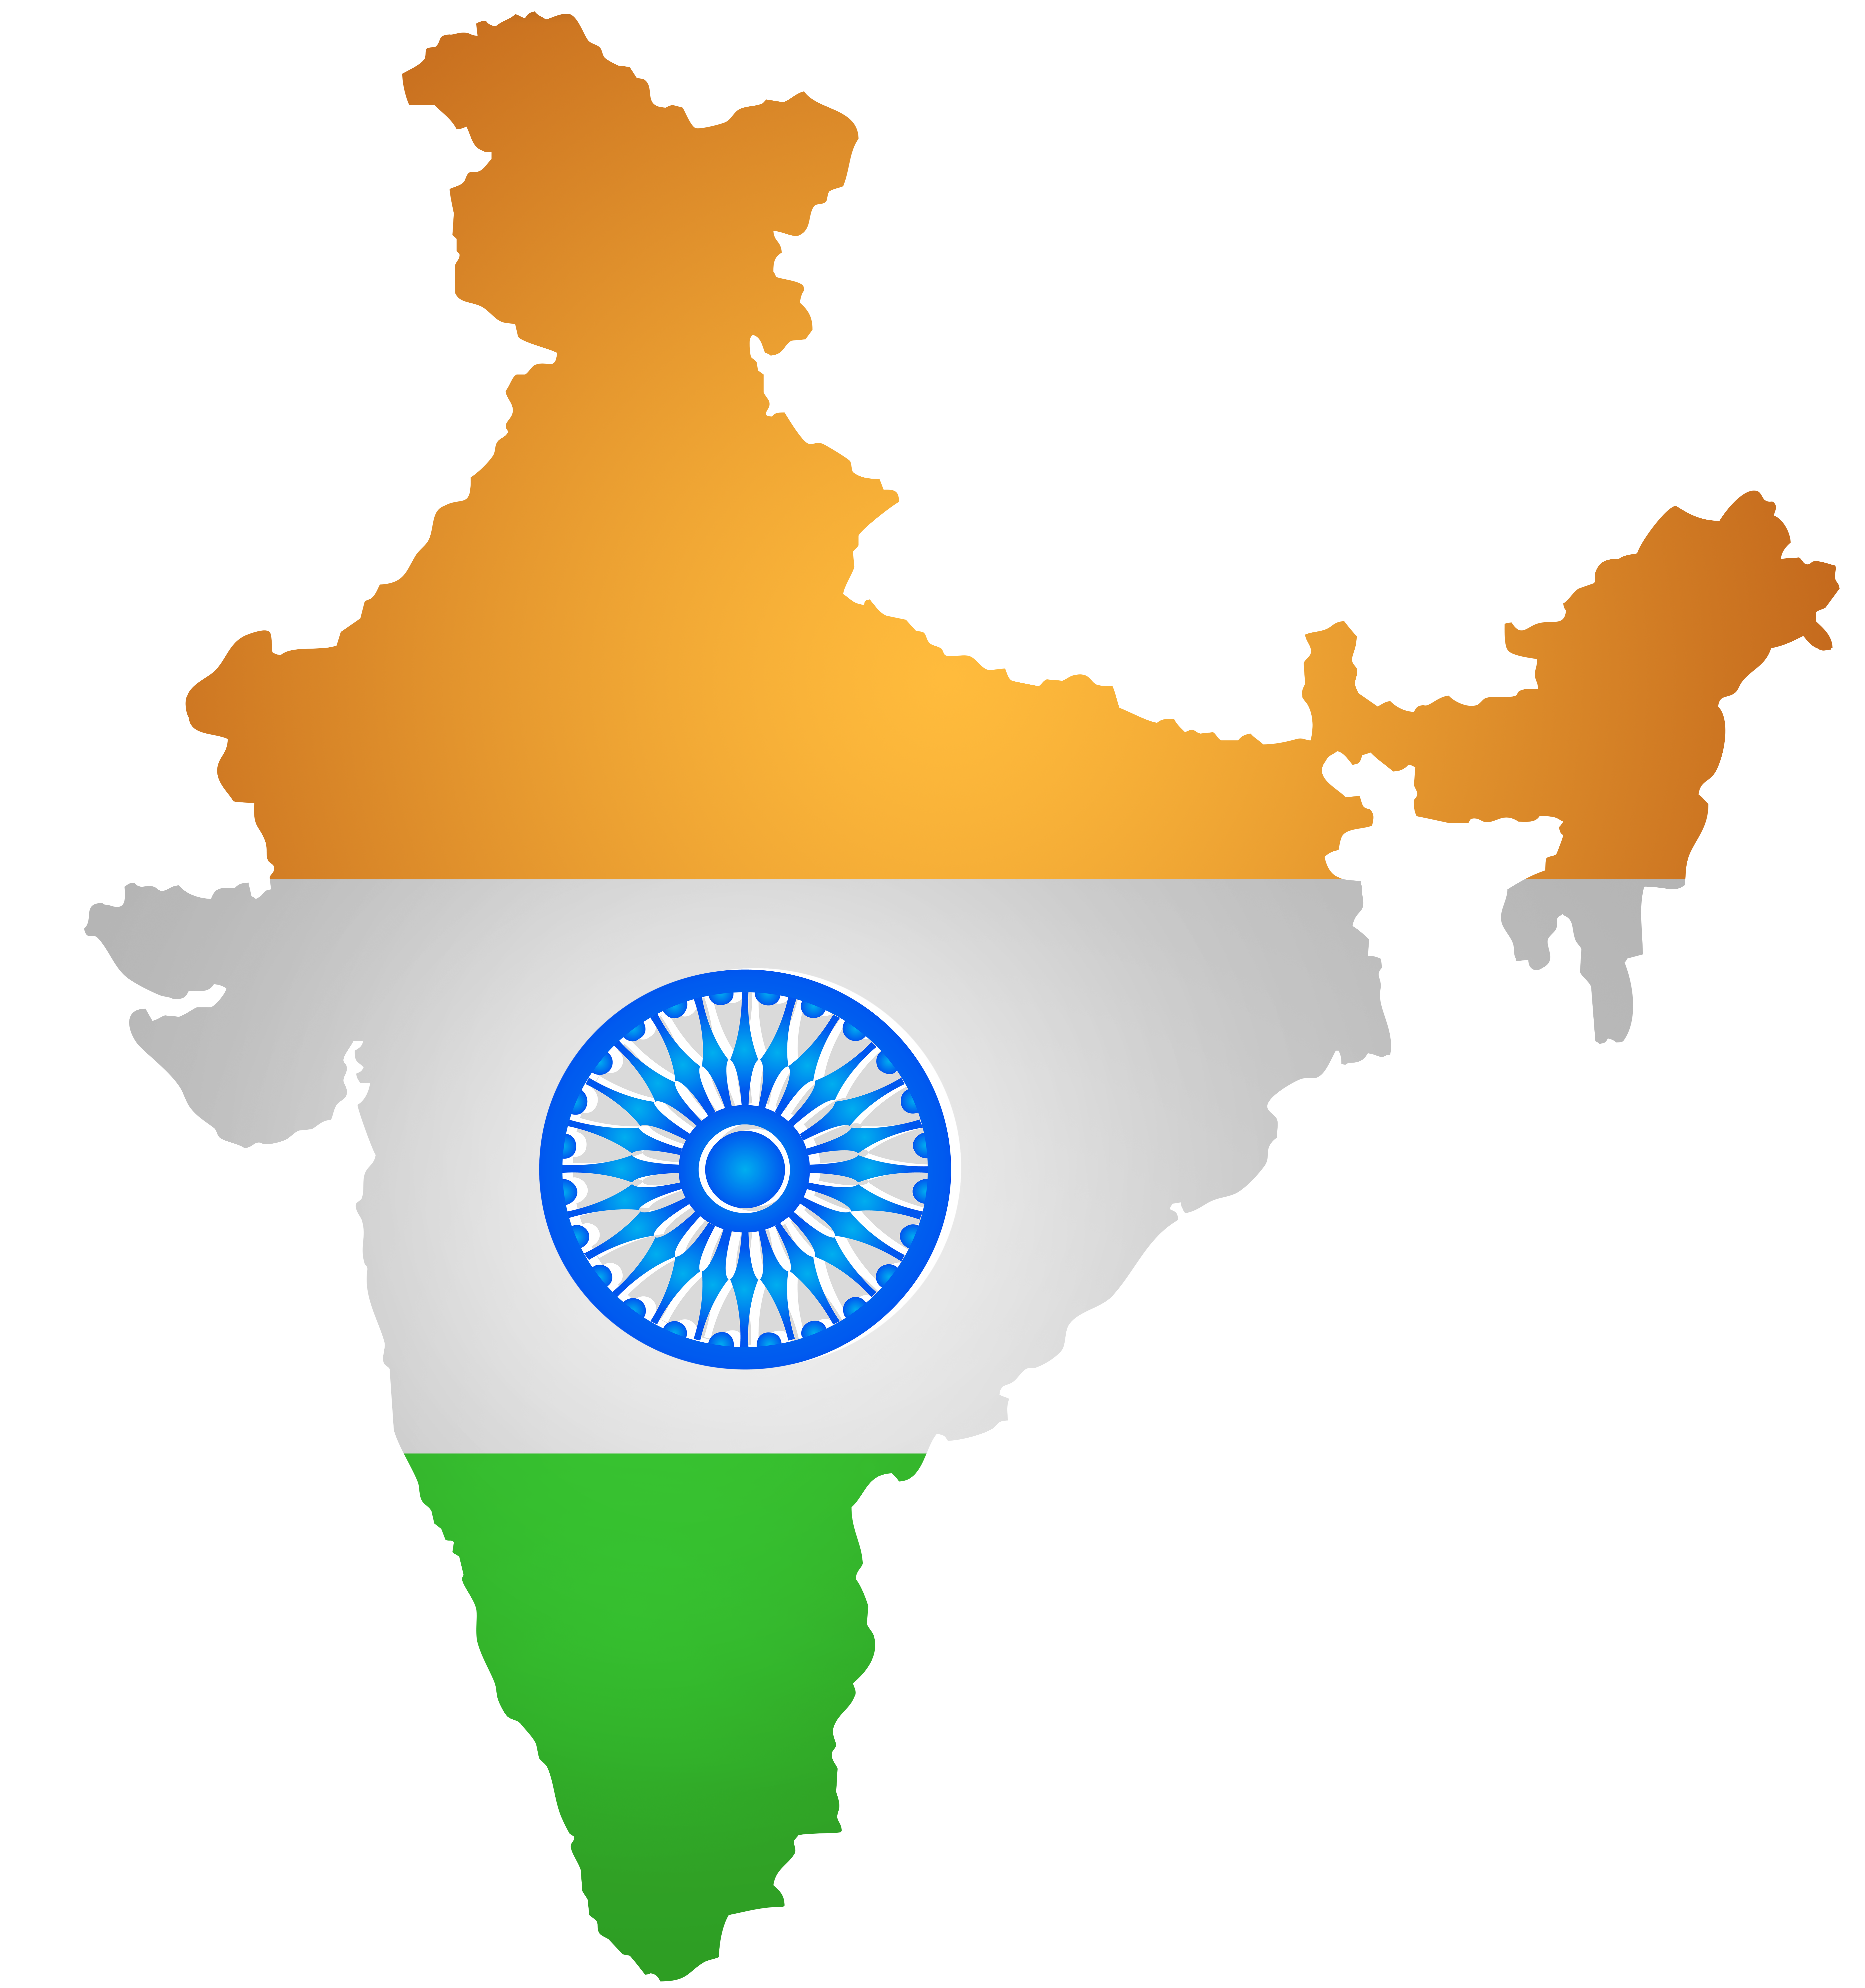 India map logo clipart black and white stock India Map Flag PNG Clip Art PNG Image | Gallery ... black and white stock